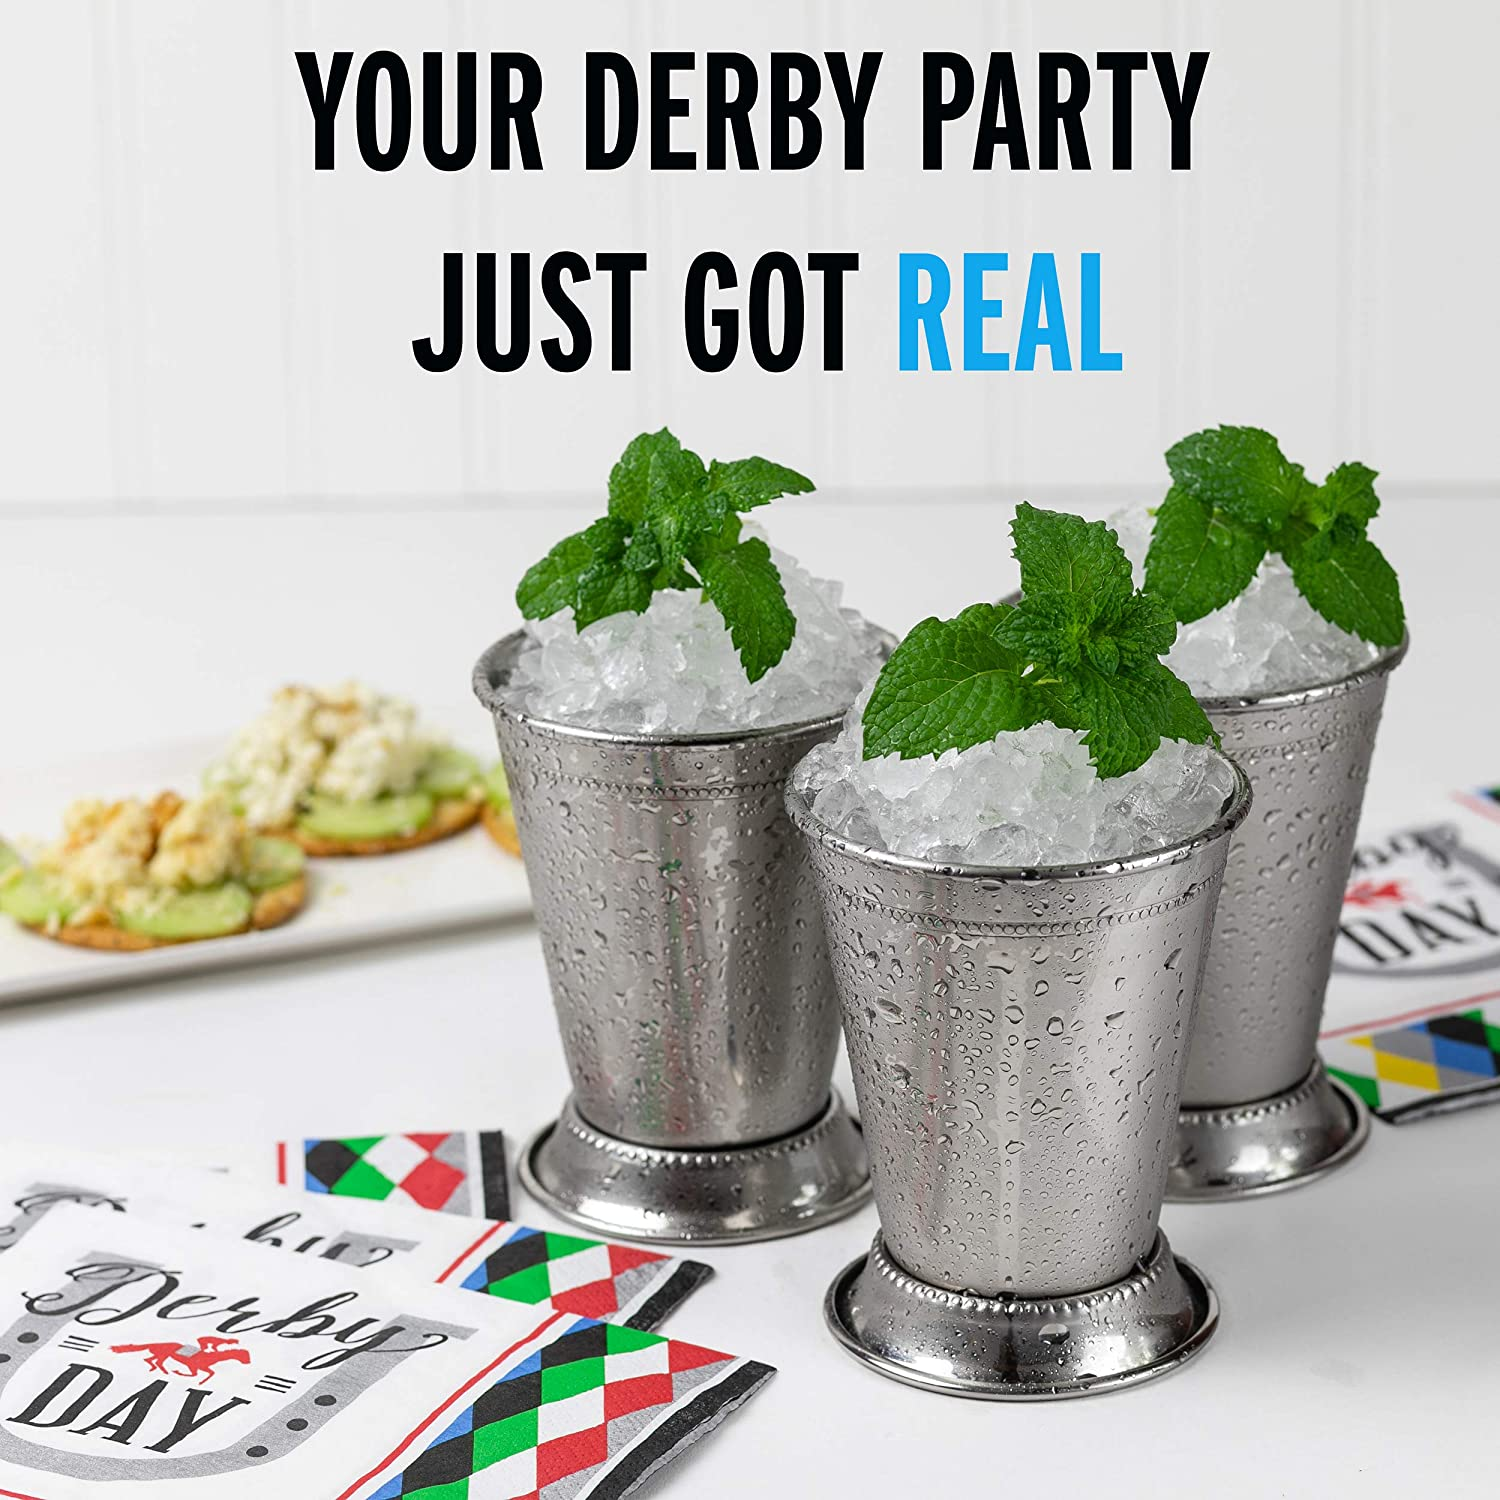 Derby Party Supplies Mint Julep Cups: Stainless Steel Kentucky Derby Glasses Set of 2 OR 4 Metal 12 oz Cocktail Glasses